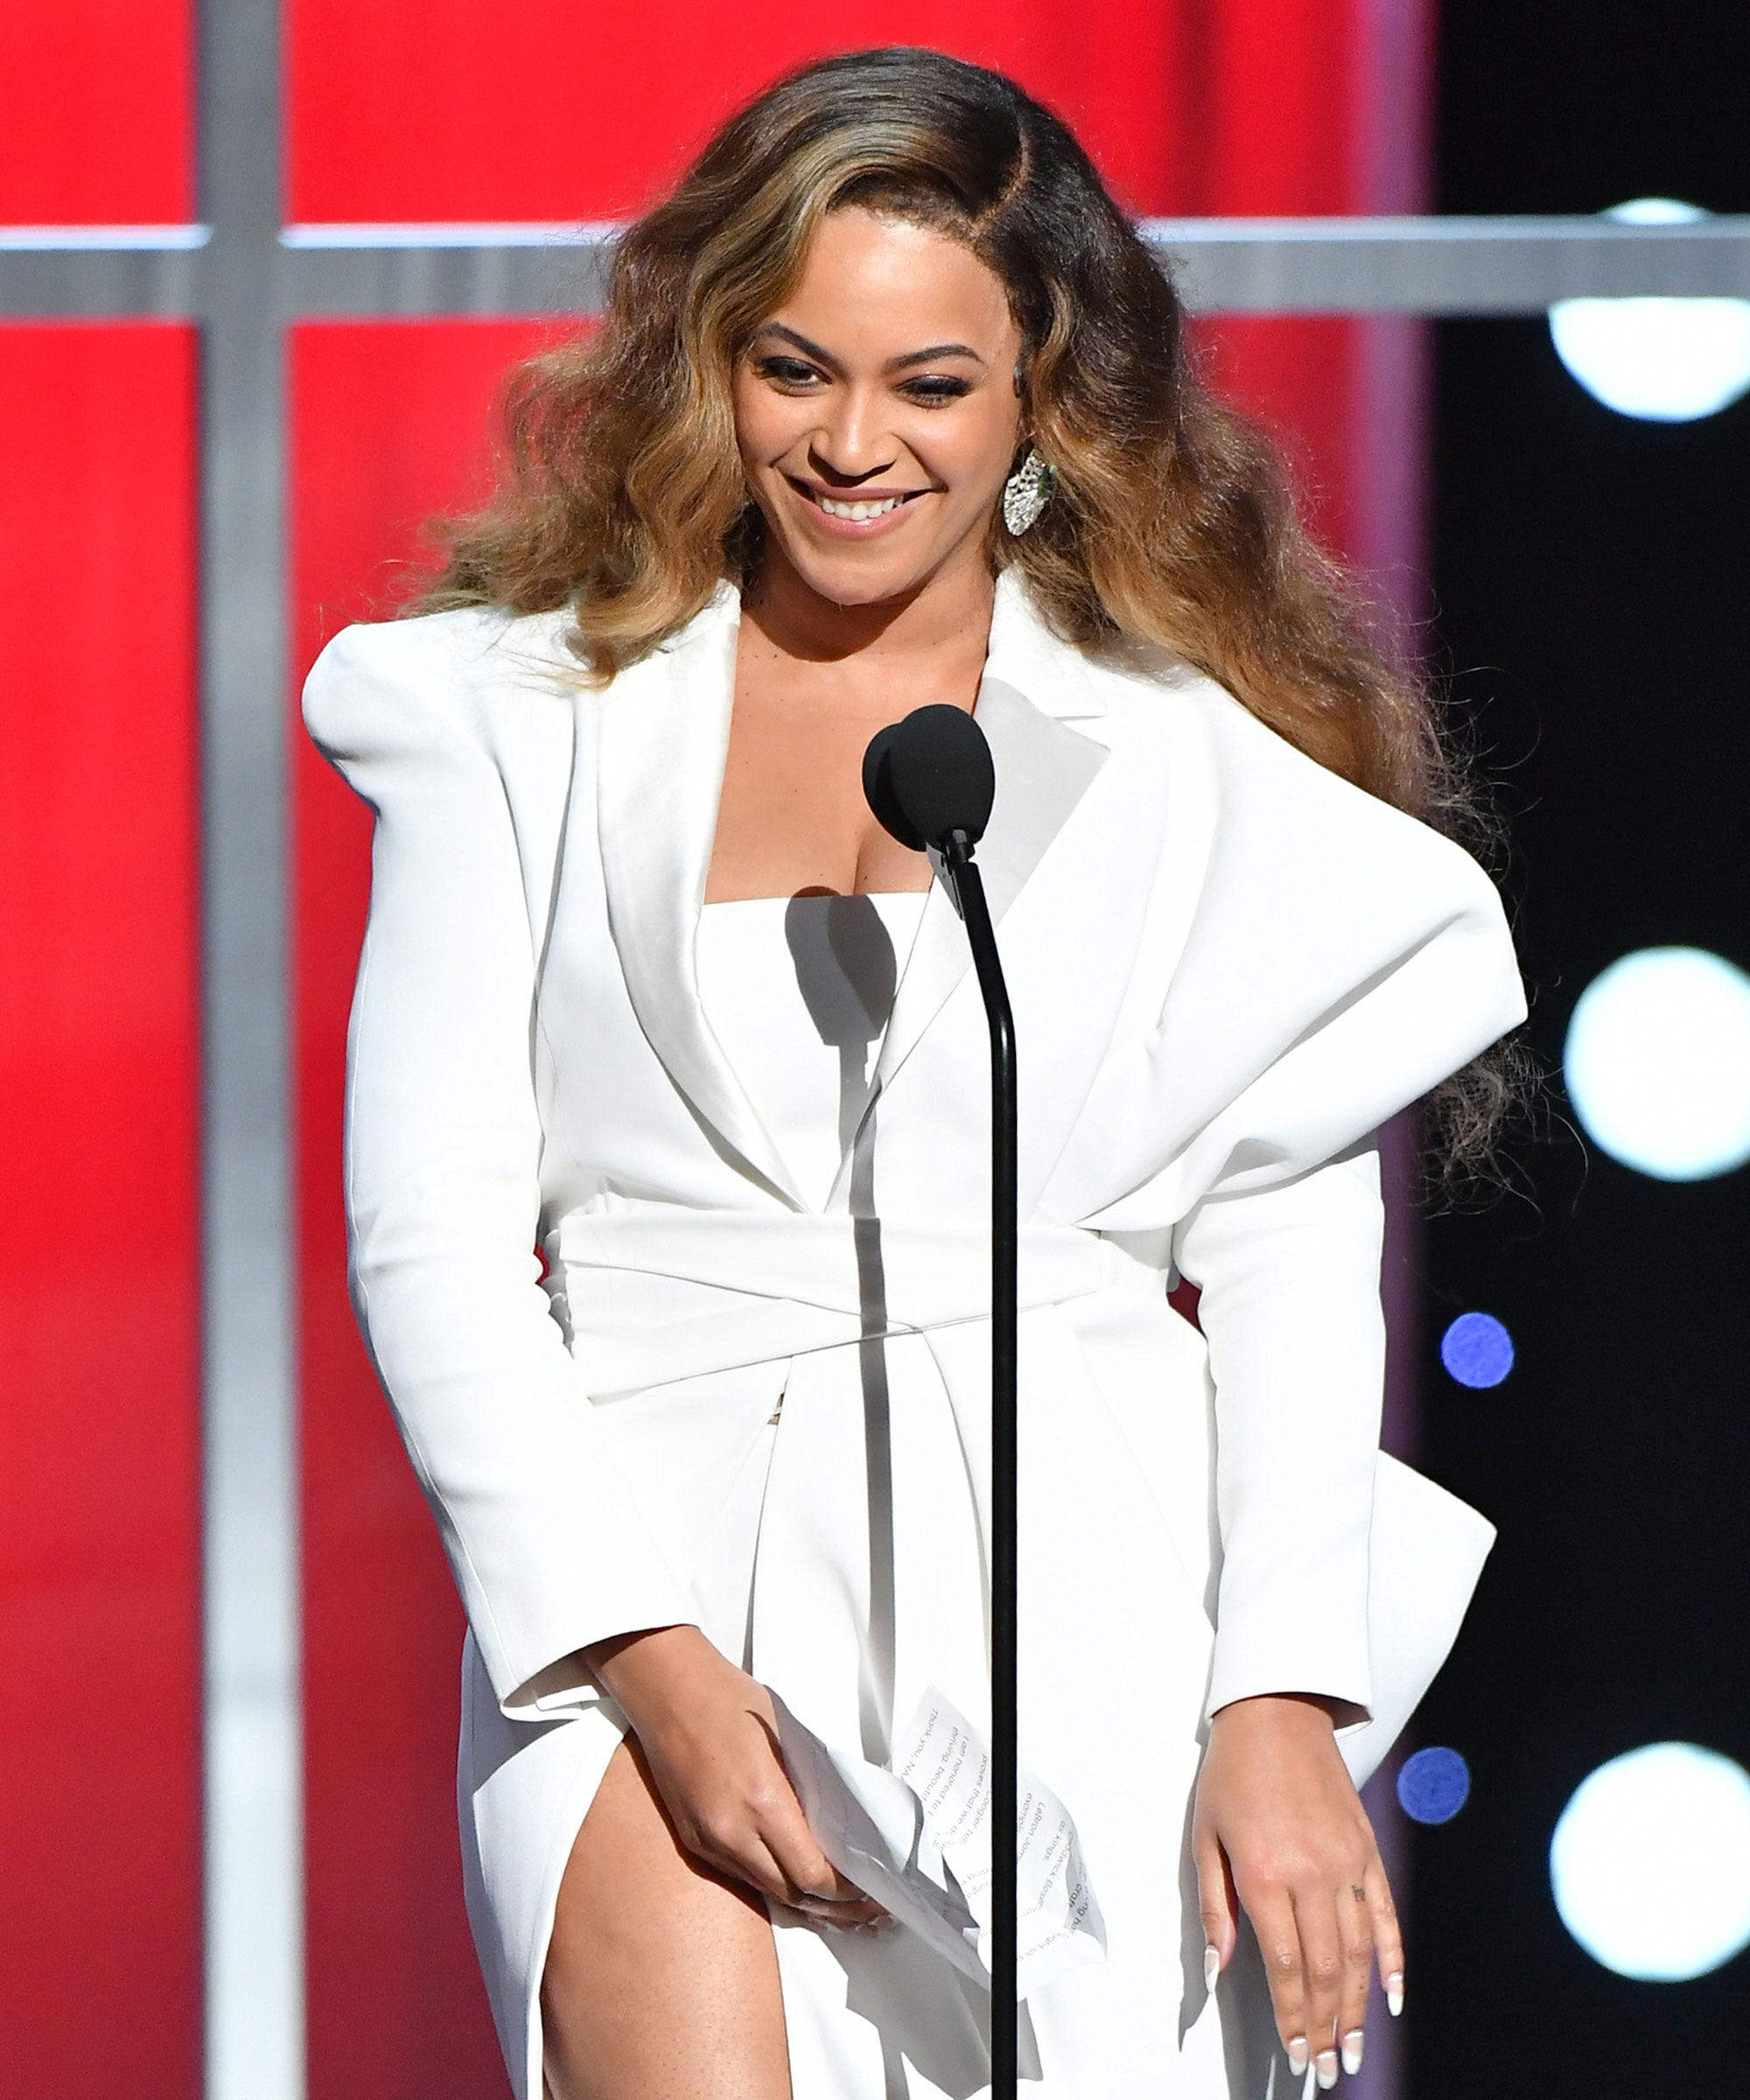 Beyoncé Just Ditched Her Signature Blonde Hair — & Her New Look Slays